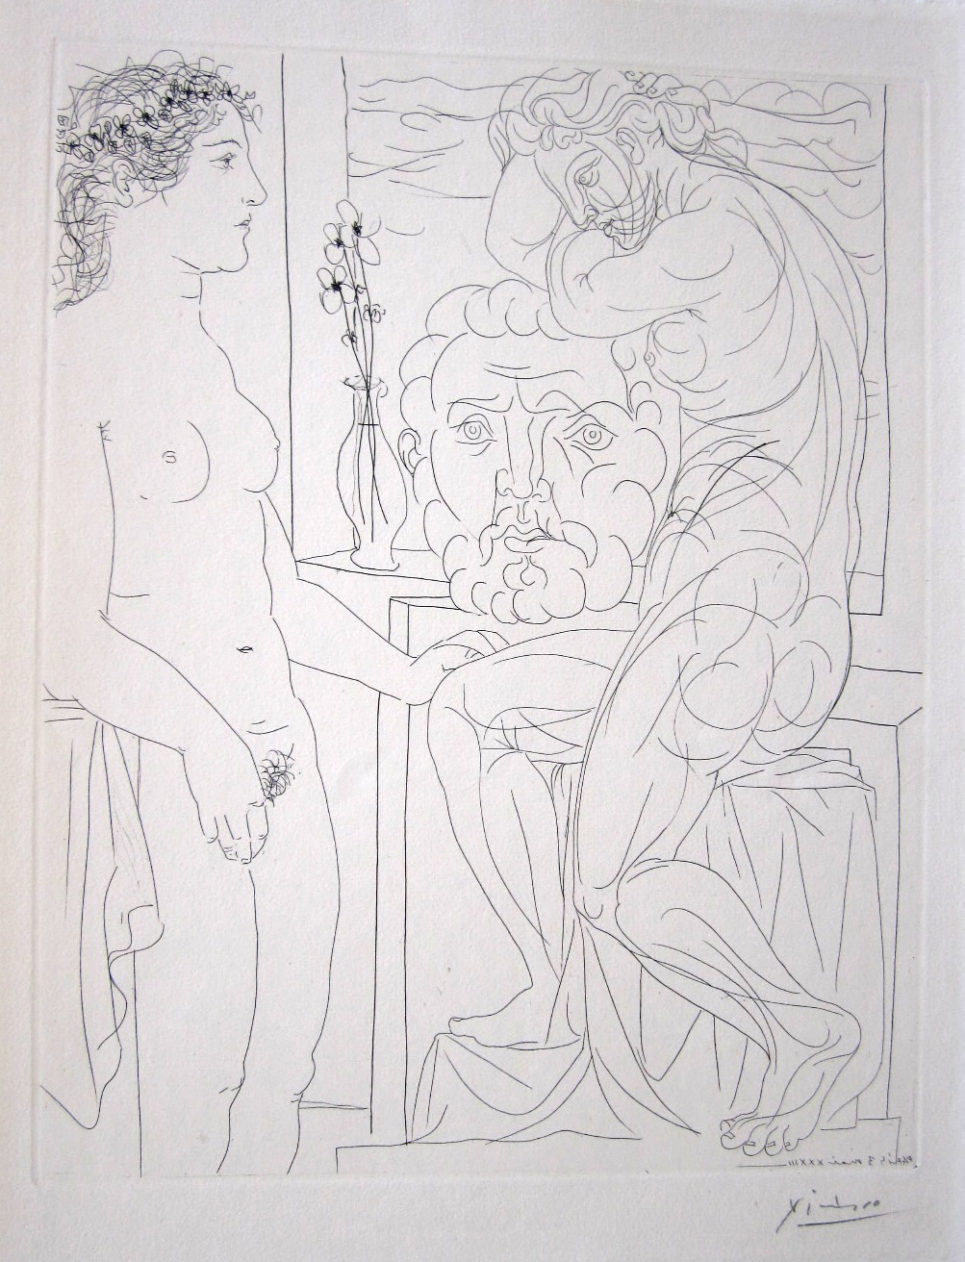 vollard suite modele nu et sculptures by pablo picasso